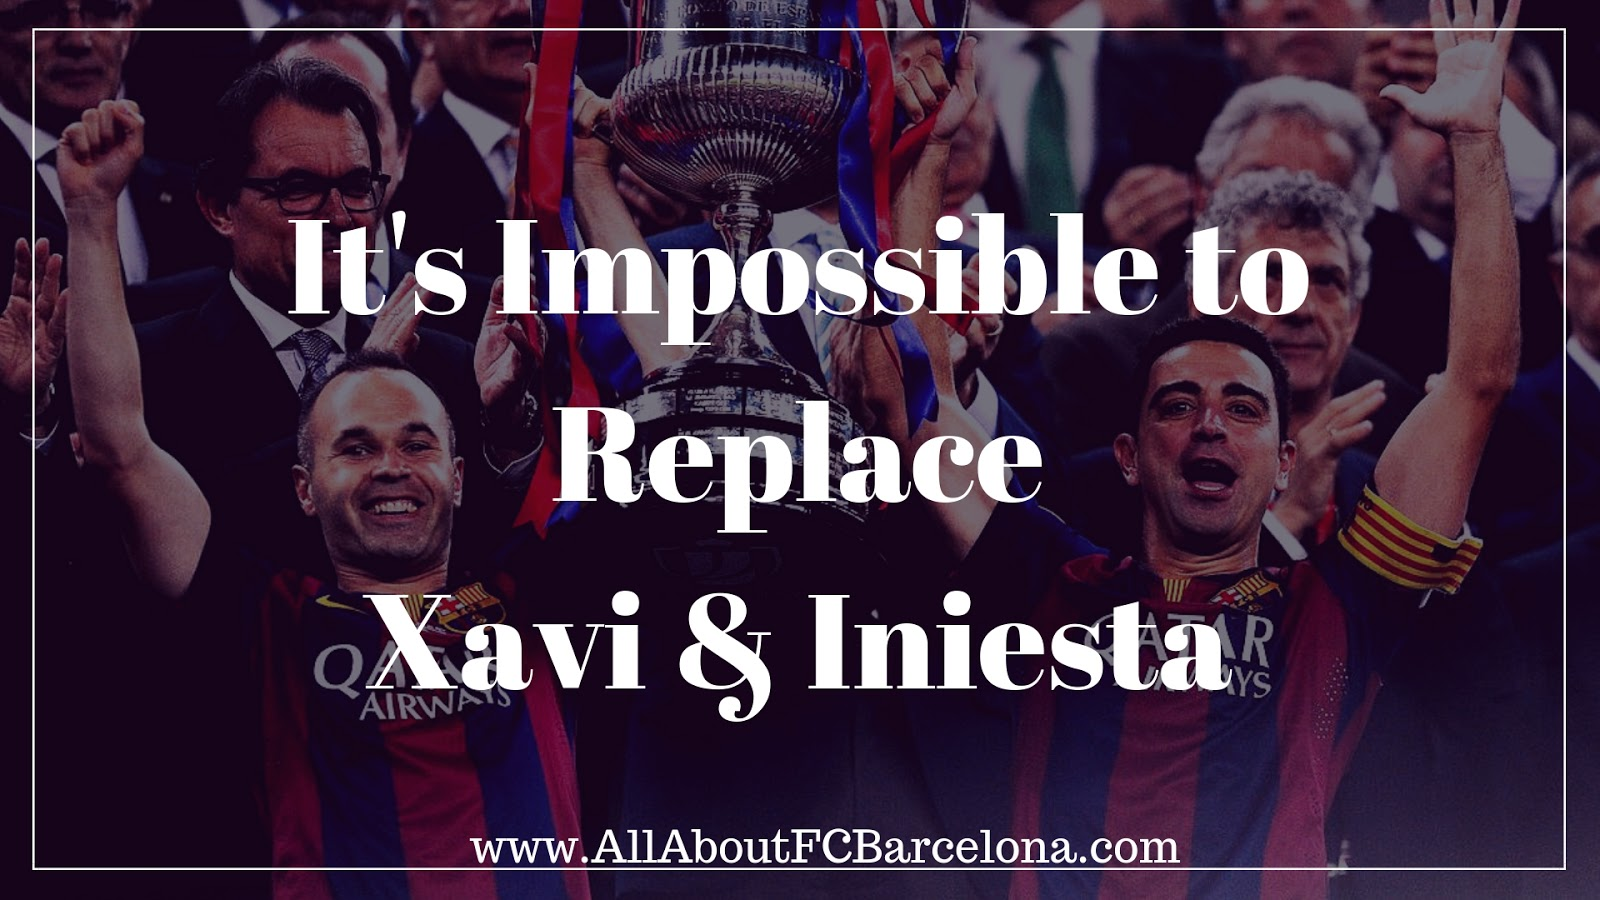 Barcelona won't be able to Replace Iniesta and Xavi #barca #Xavi #iniesta #fcbarcelona